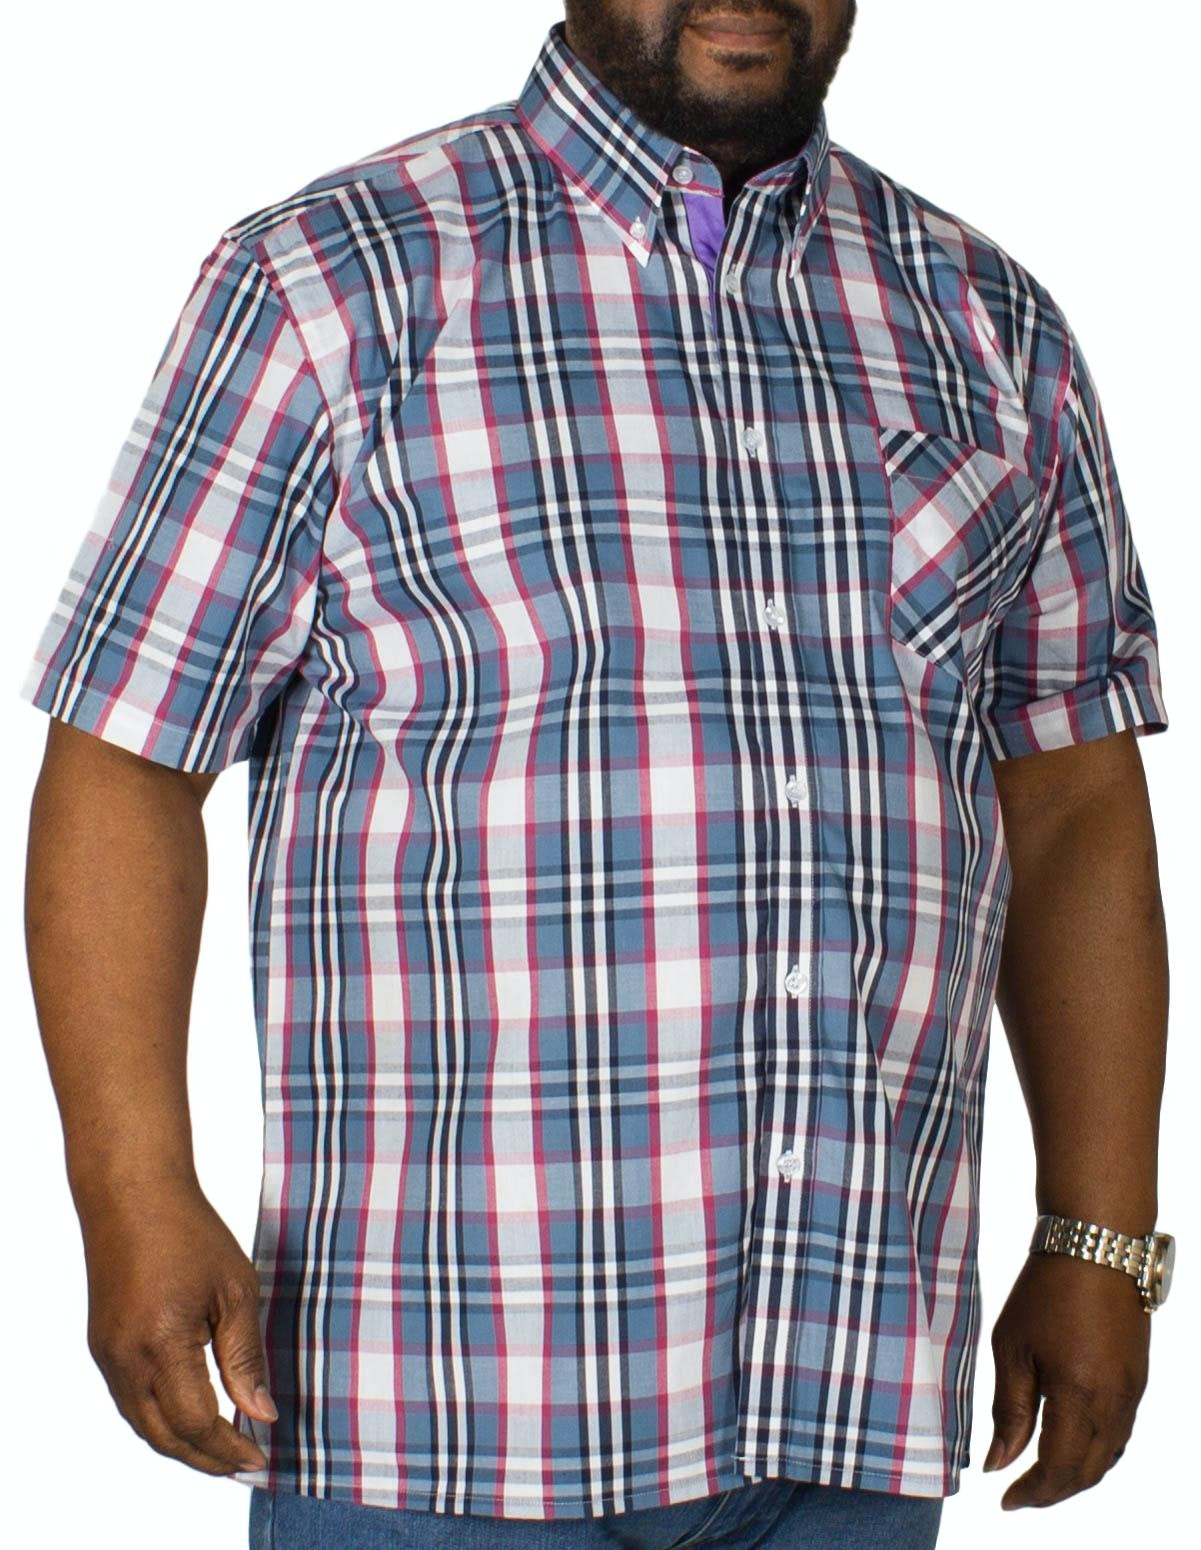 KAM Check Short Sleeved Shirt Demin